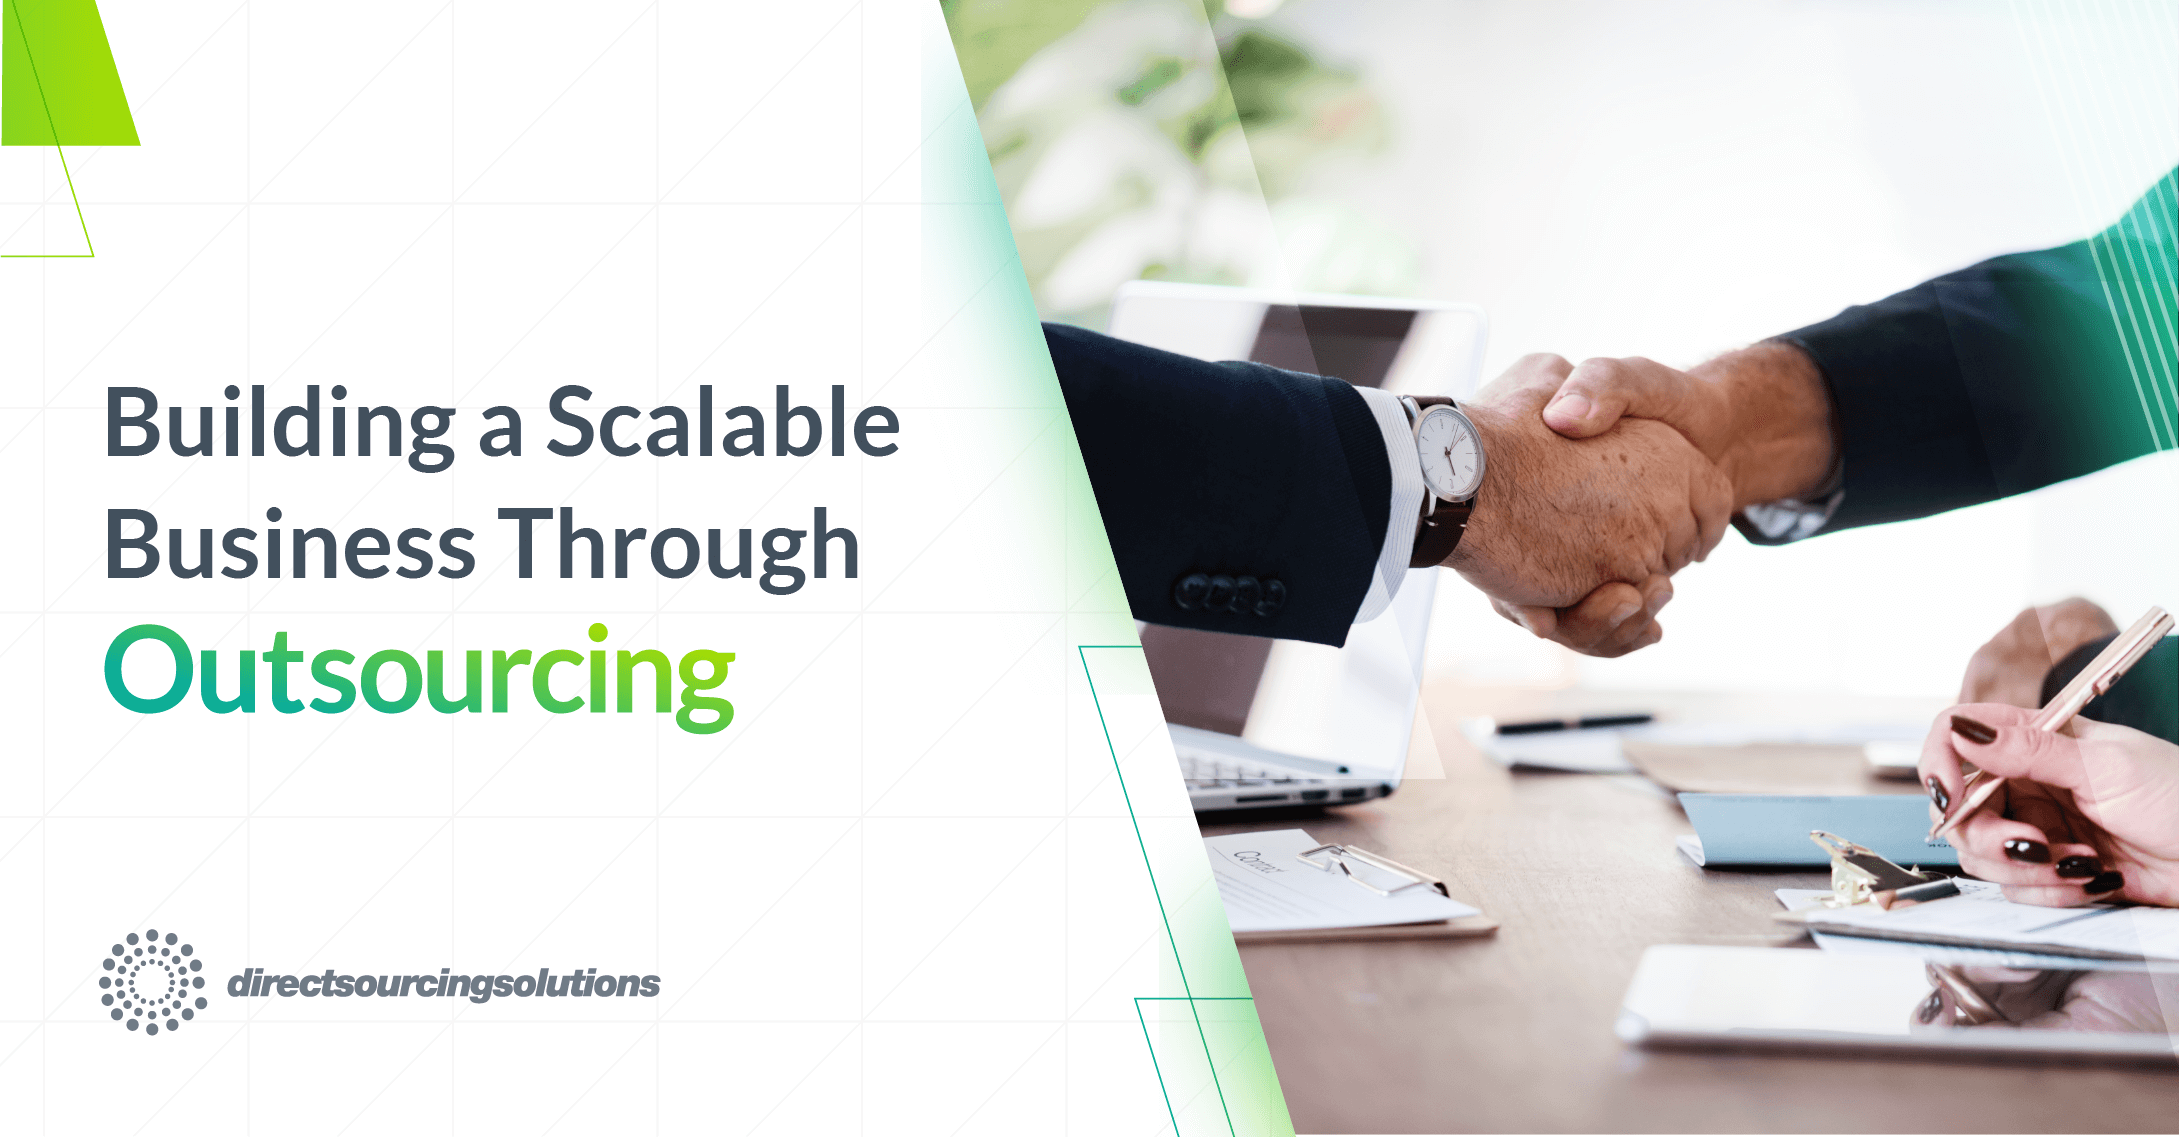 Building a Scalable Business Through Outsourcing